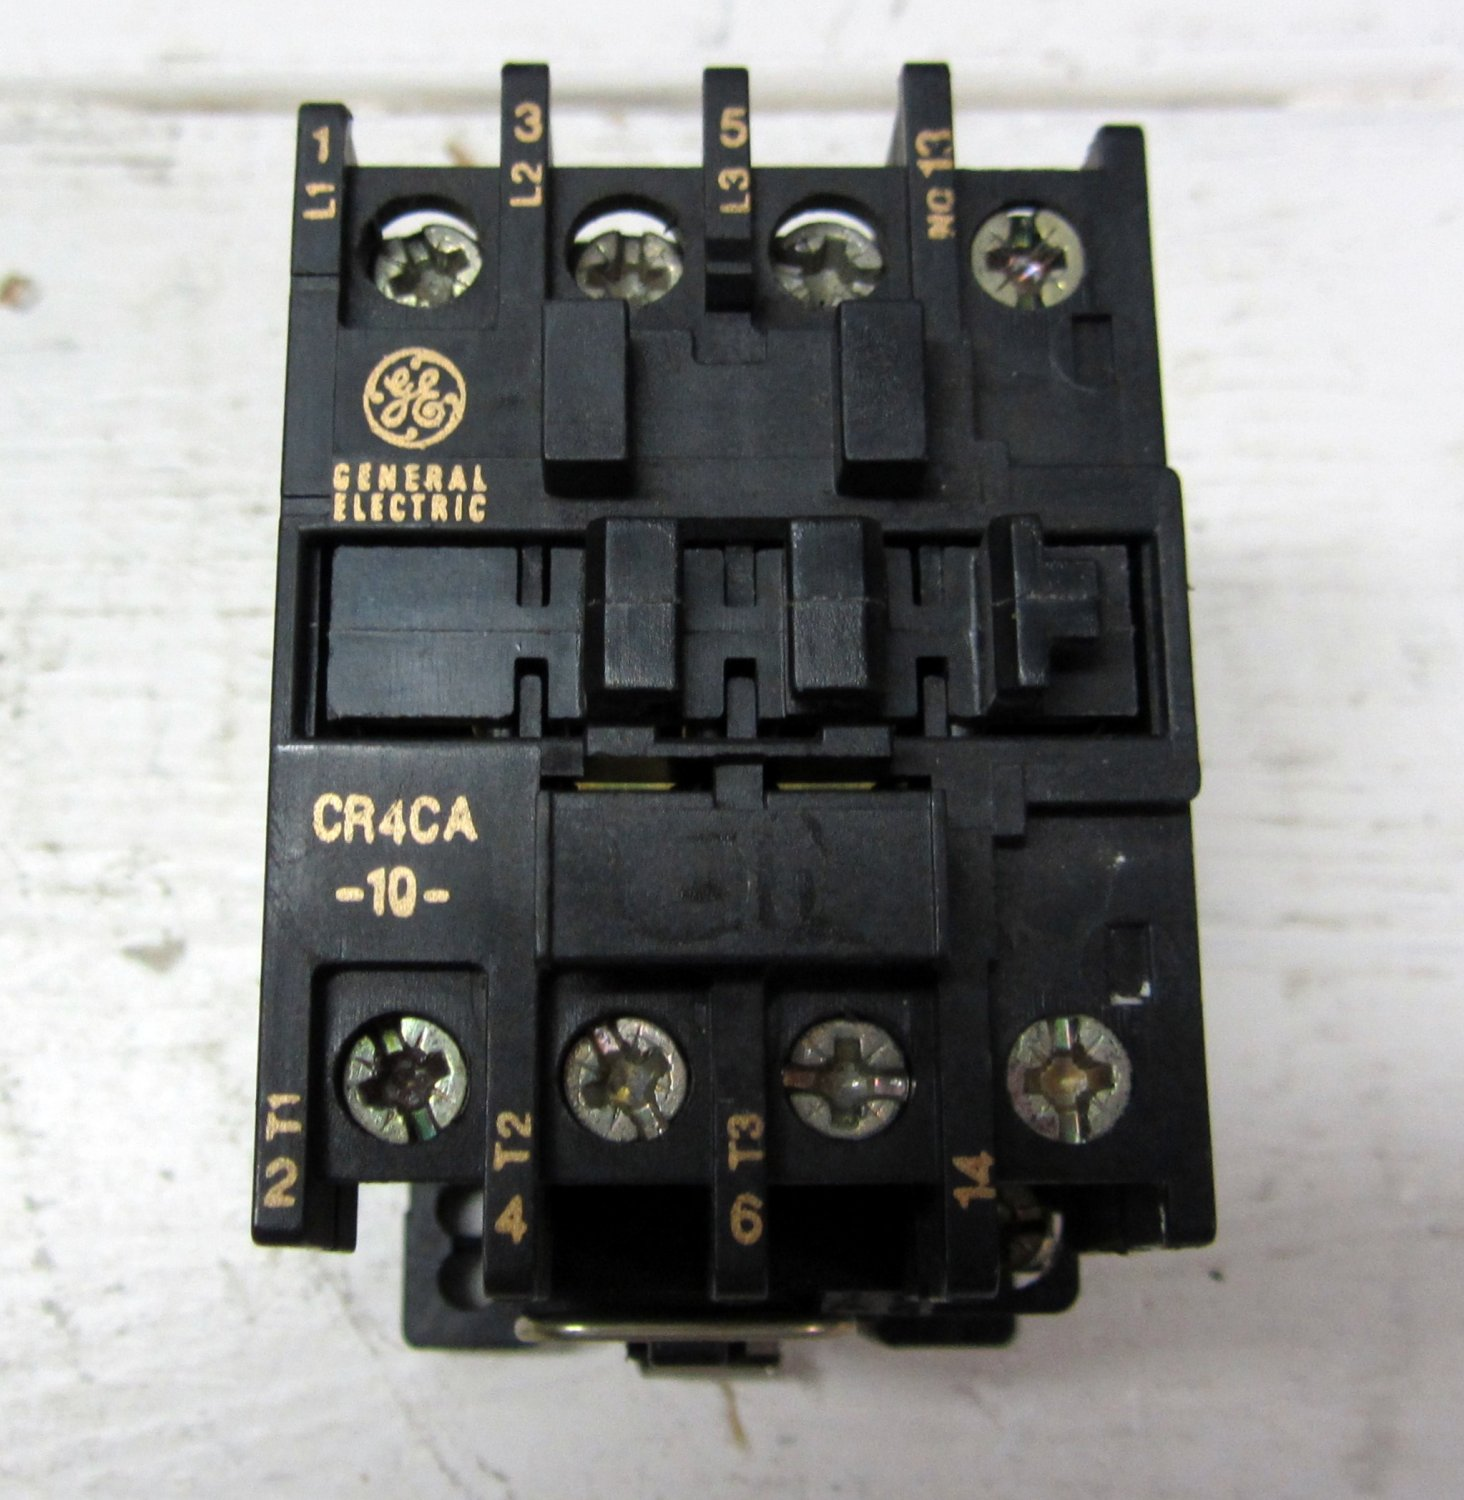 General electric cr4ca 10 cr4ca motor starter contactor for General electric motor starters